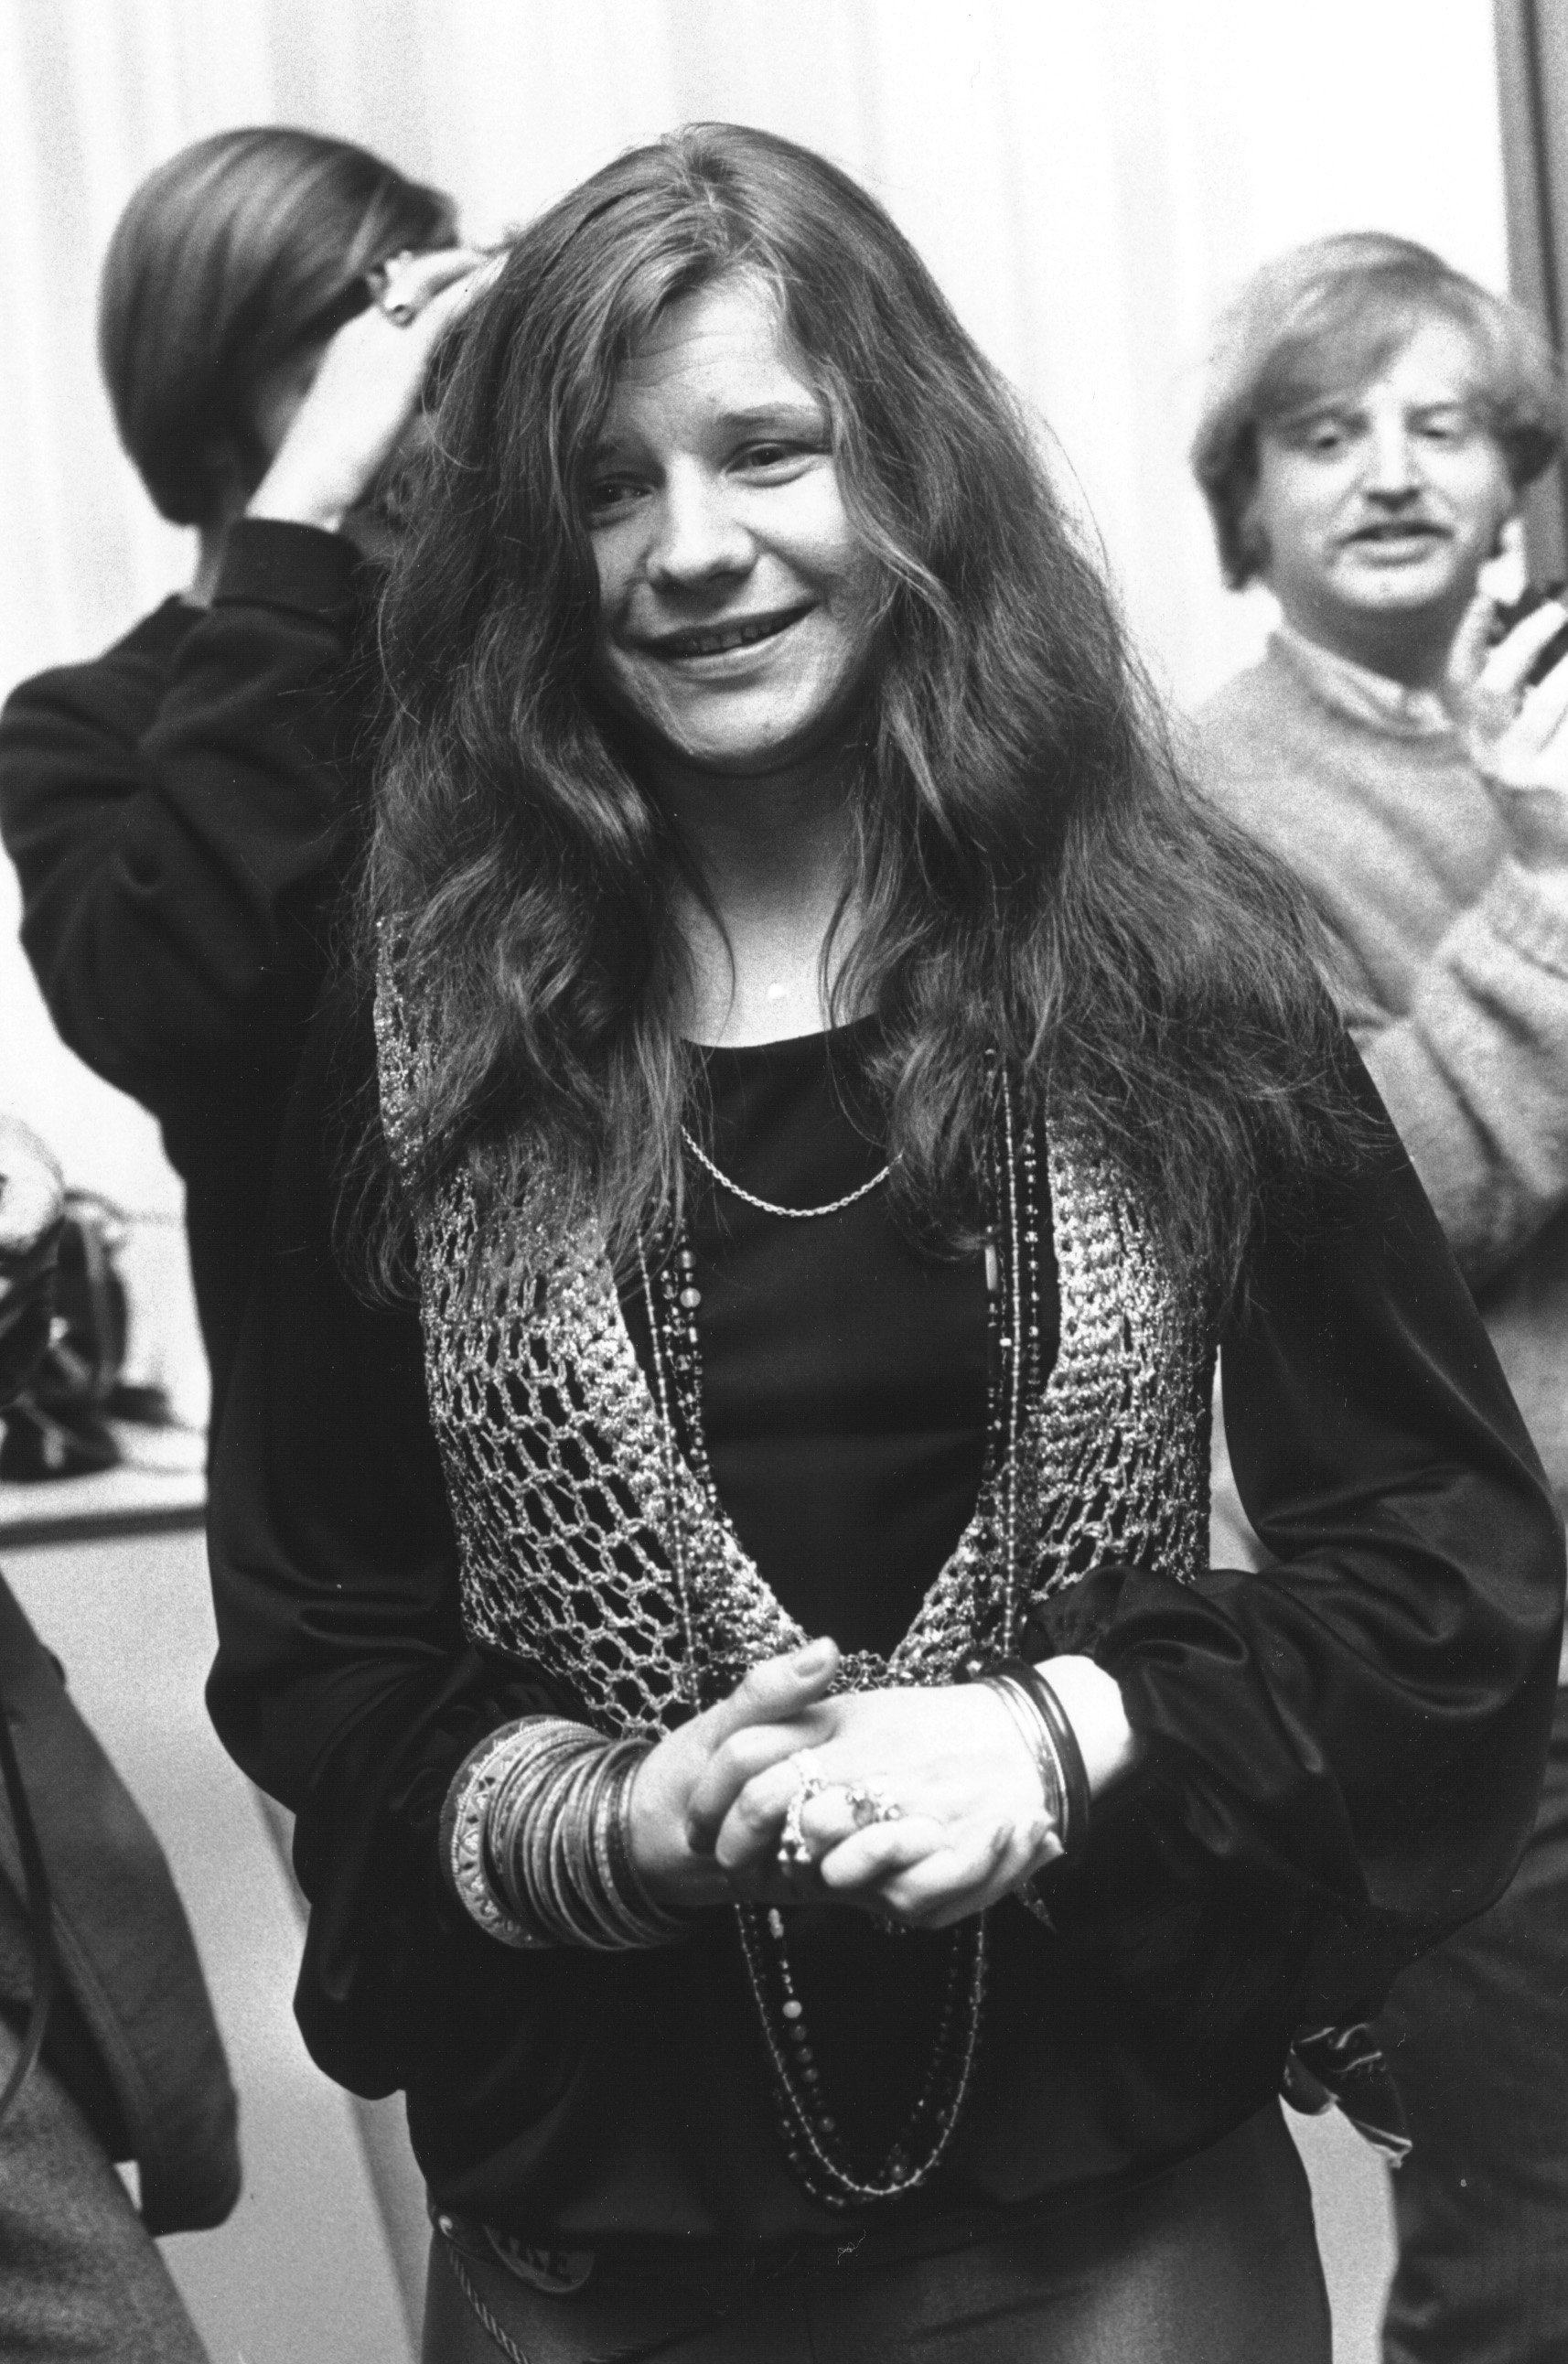 a-guide-to-cool-janis-joplin-folkr-10